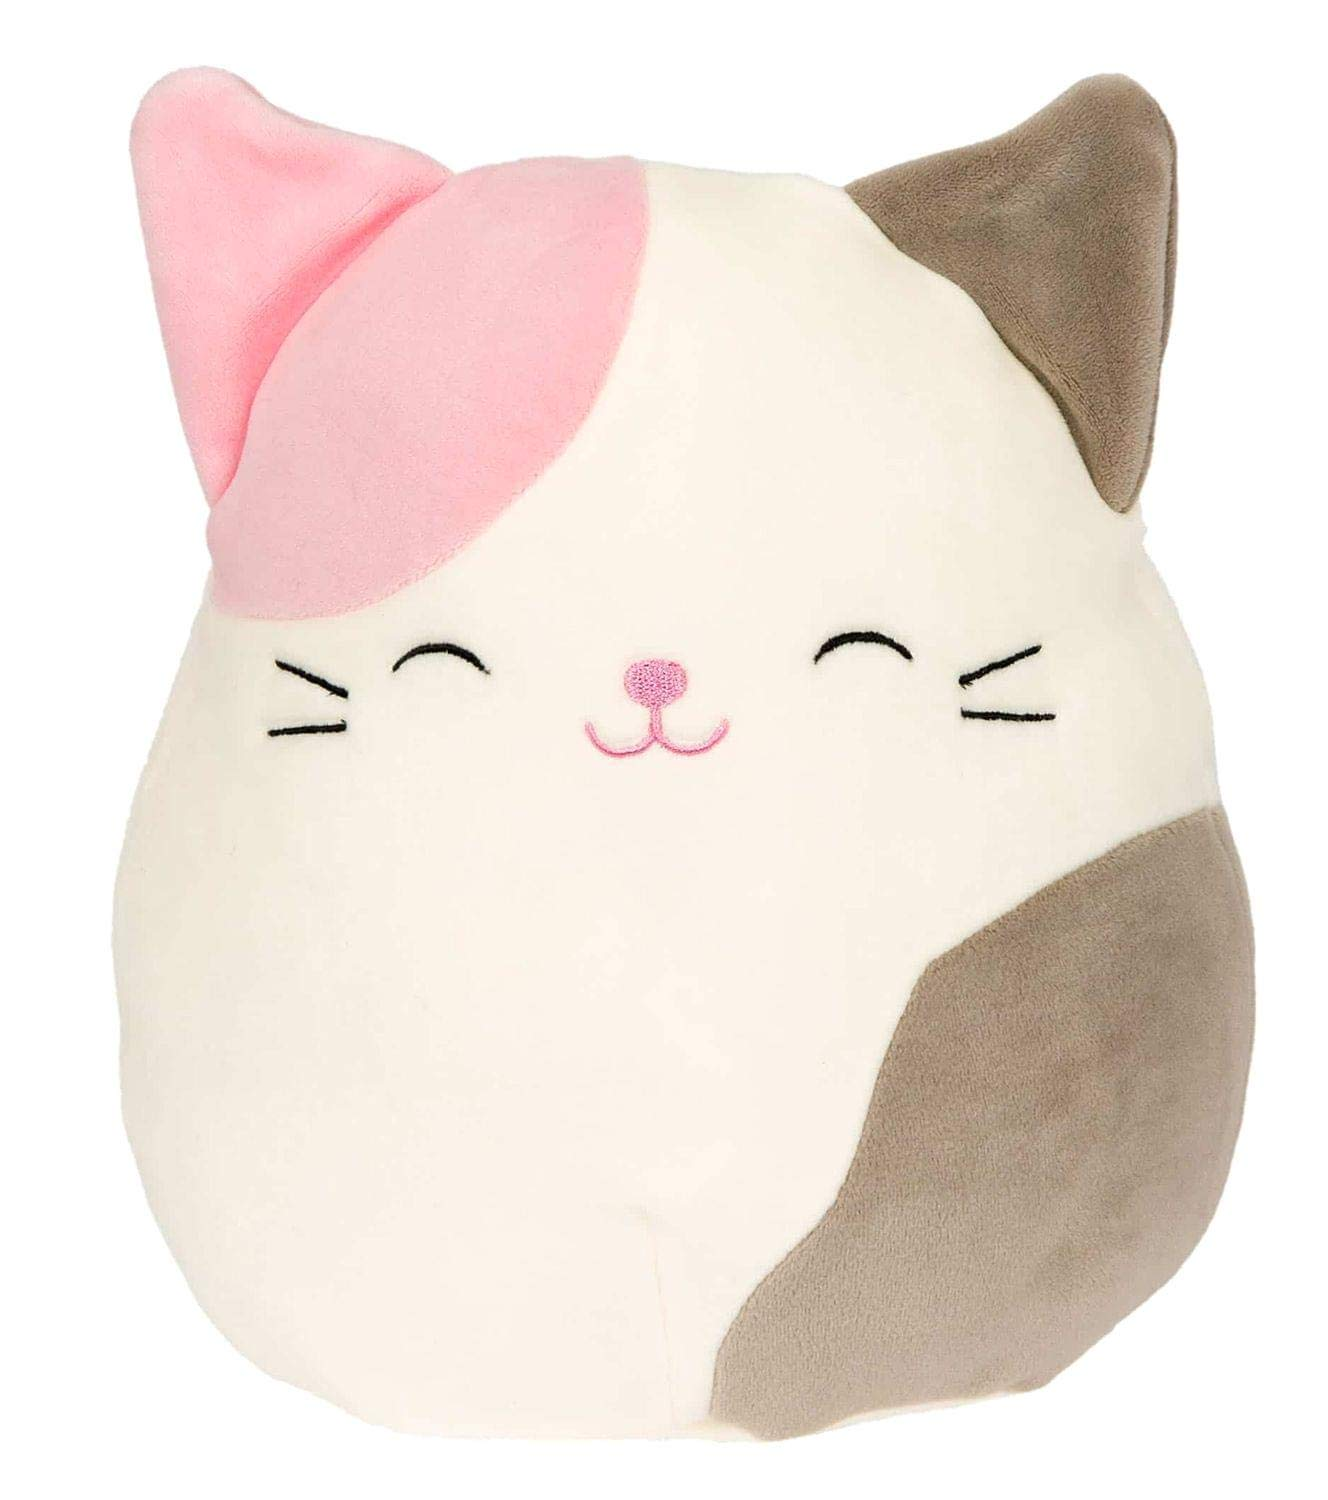 """B07HM9DPDT Squishmallow 8"""" Plush Animal Pillow Pet (Karina The Pink & Grey Tabby Cat) 611mGnkxMCL"""